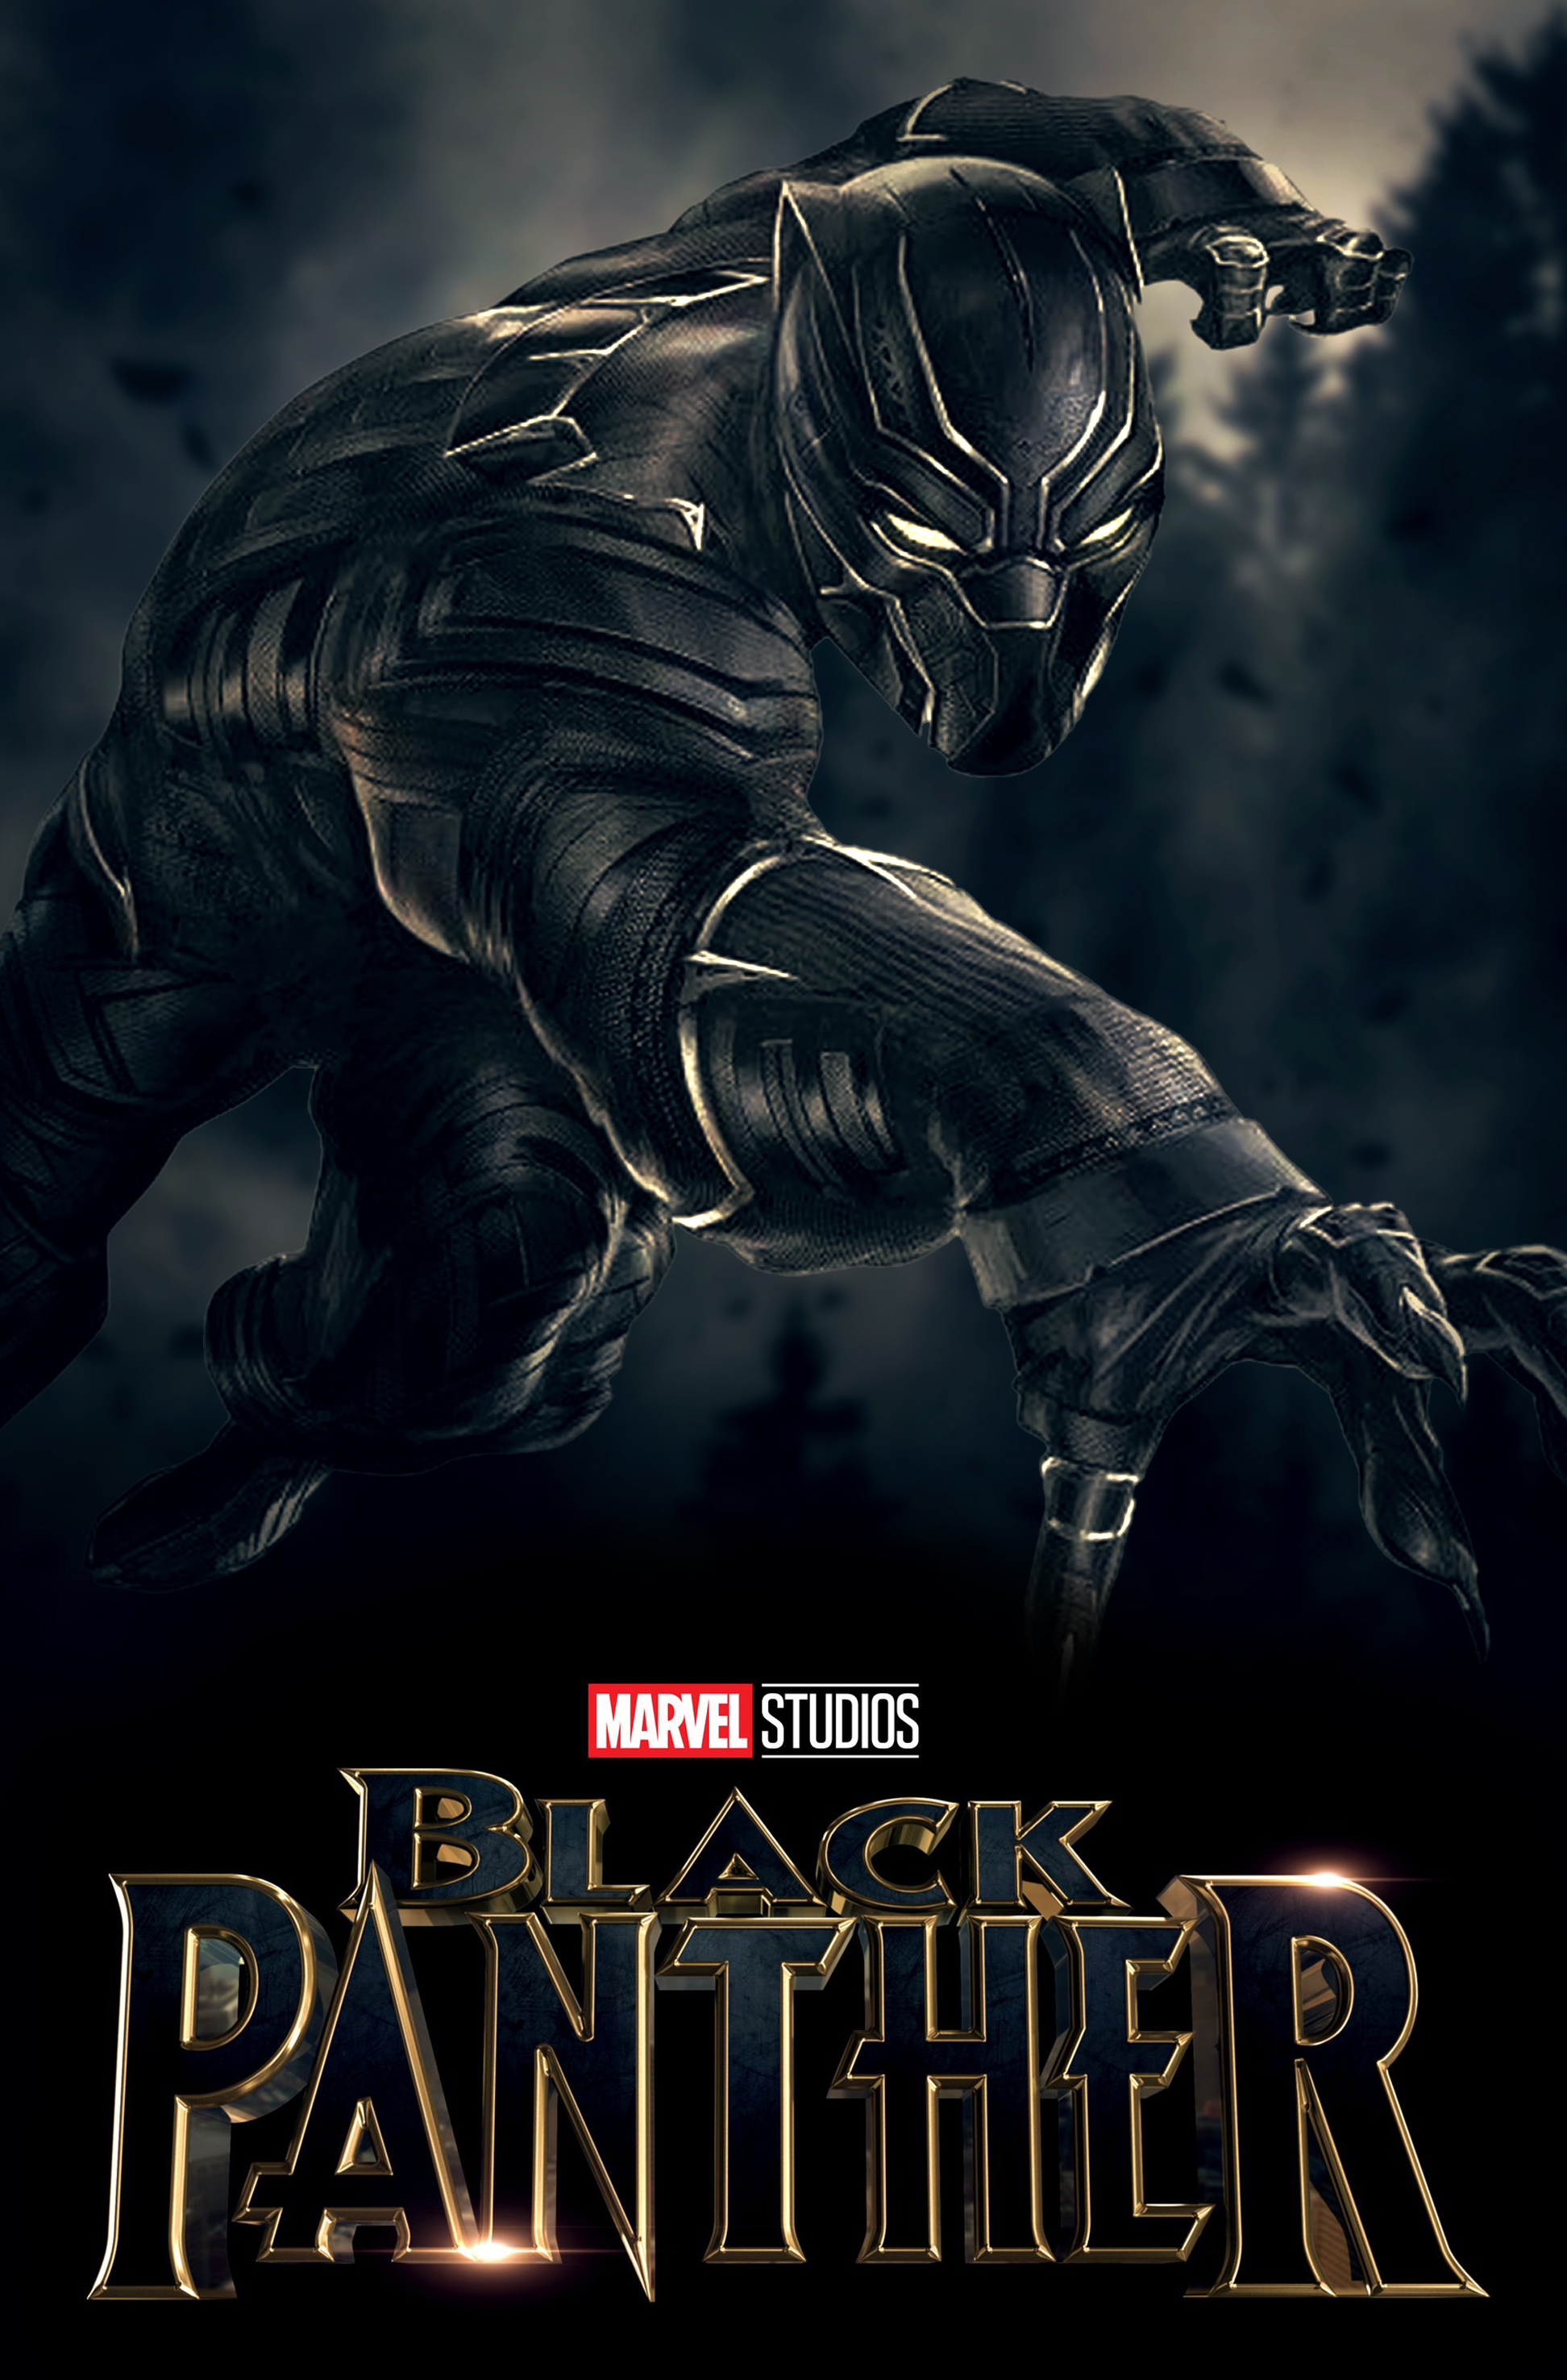 Black panther movie poster font